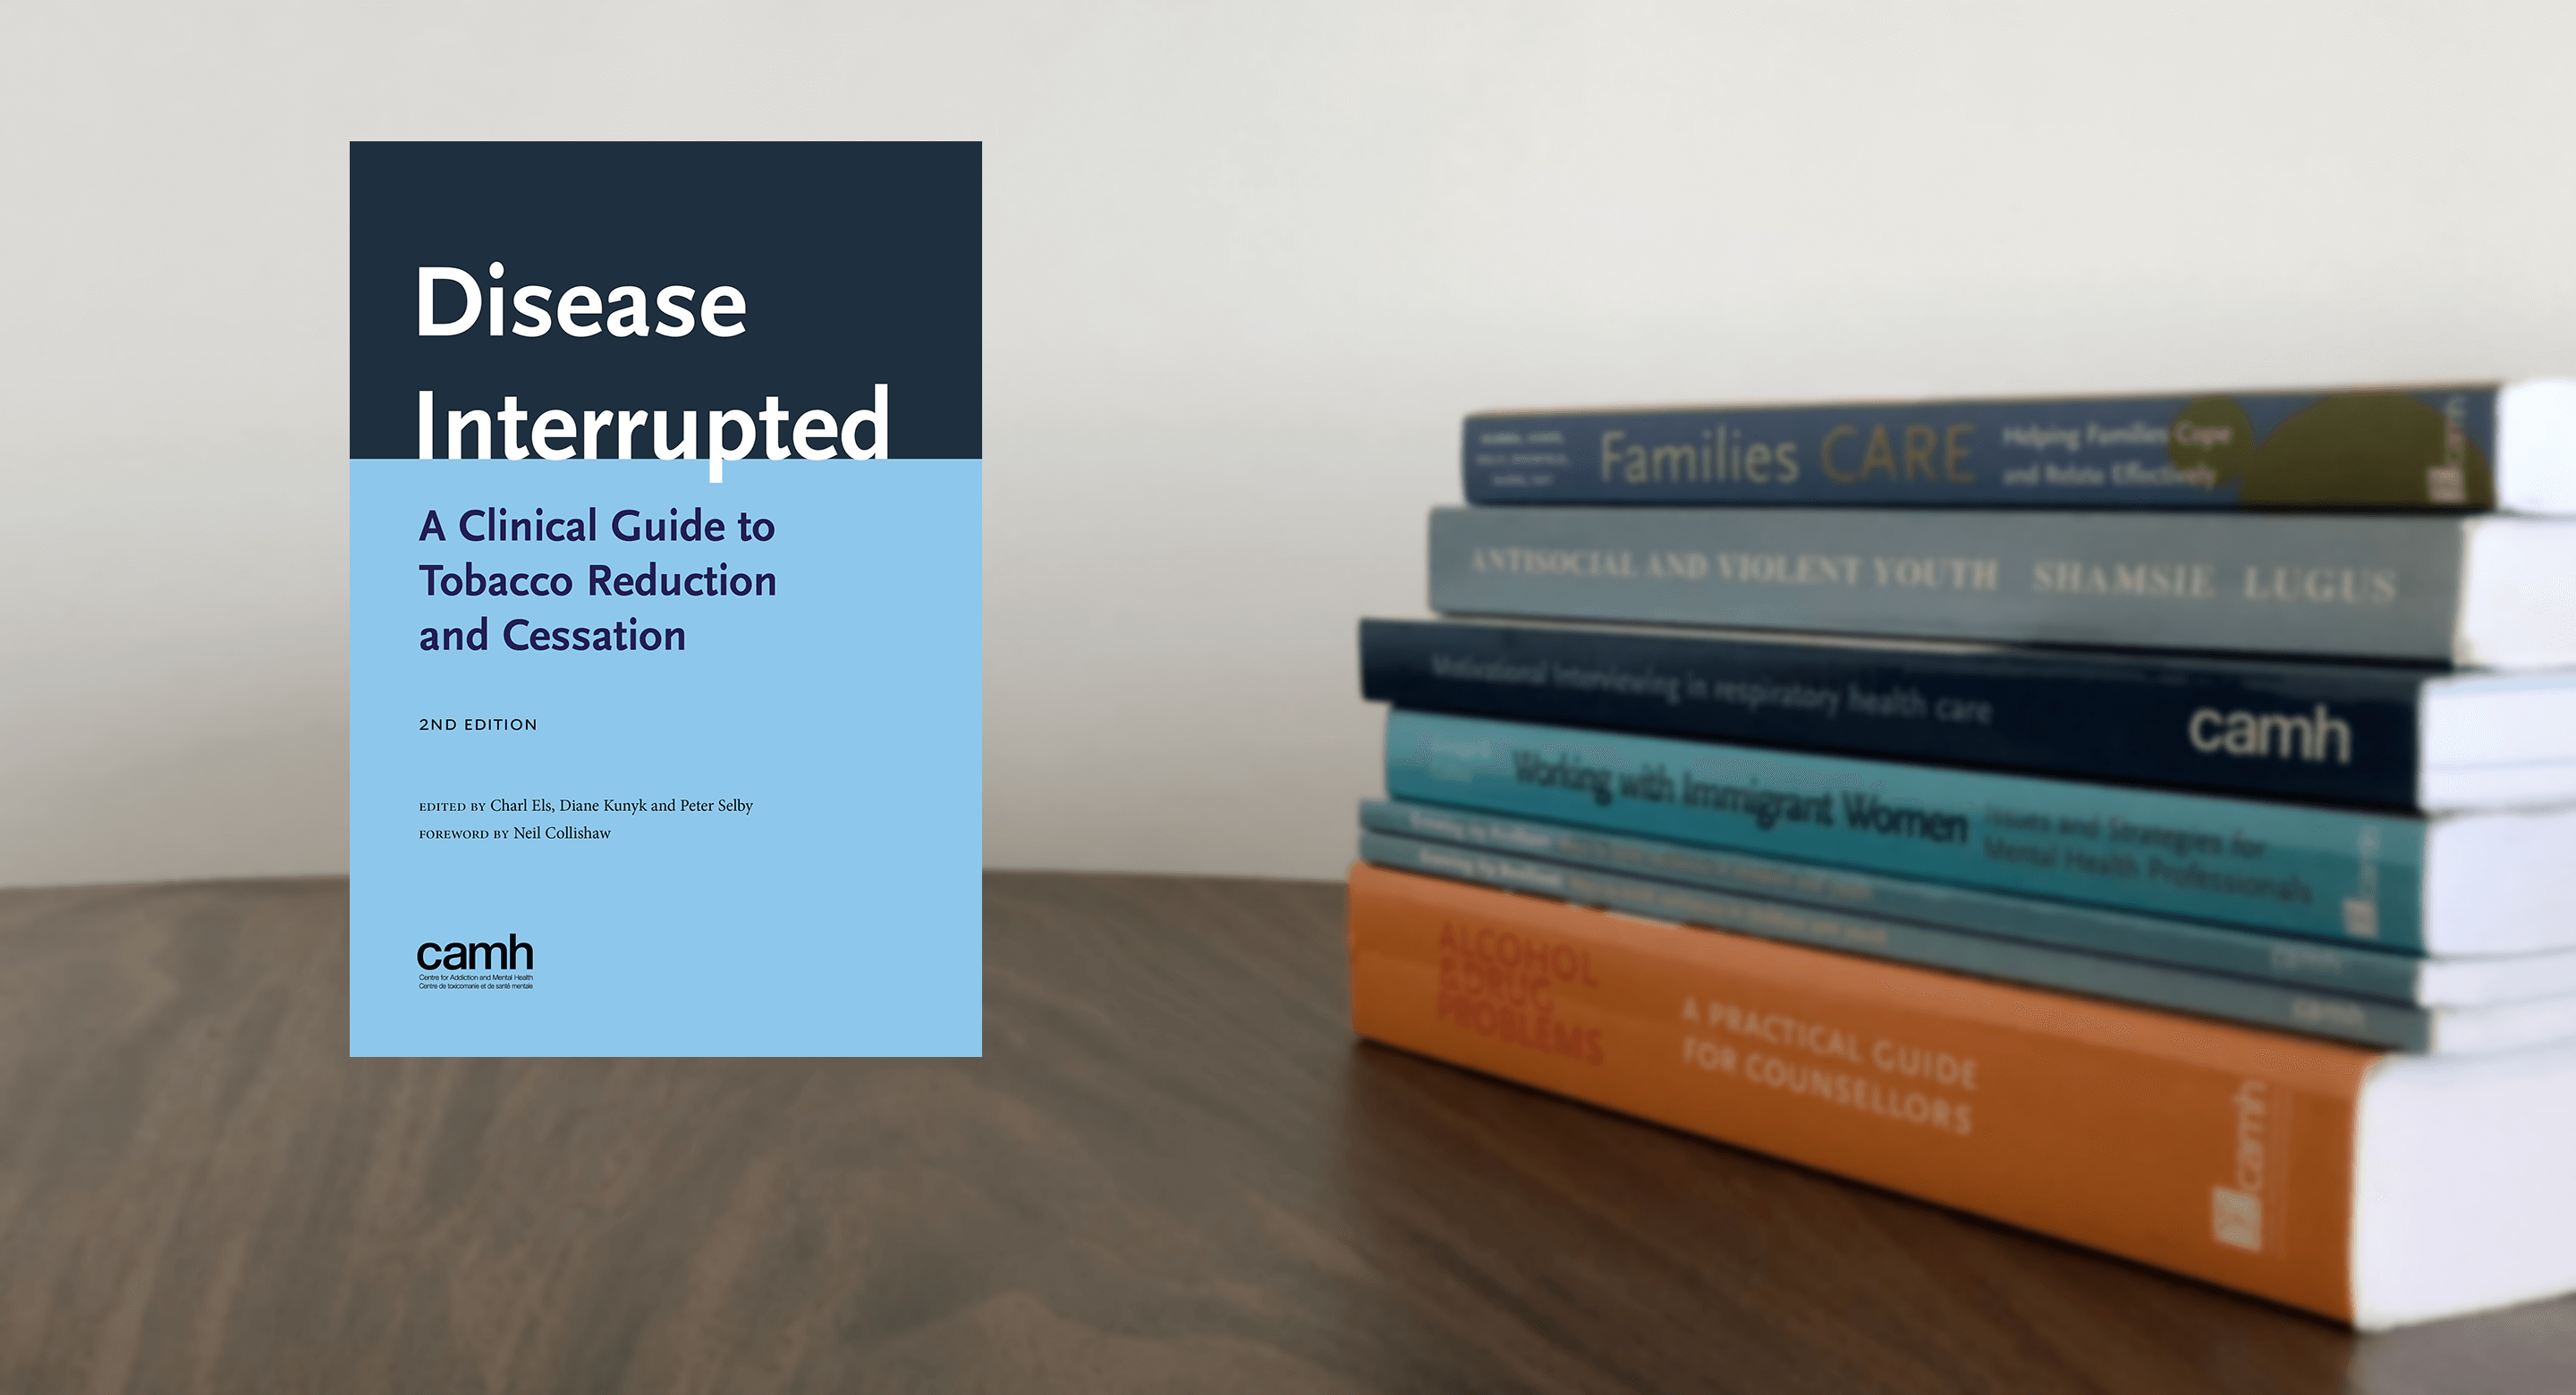 Disease Interrupted book with other CAMH publications in background